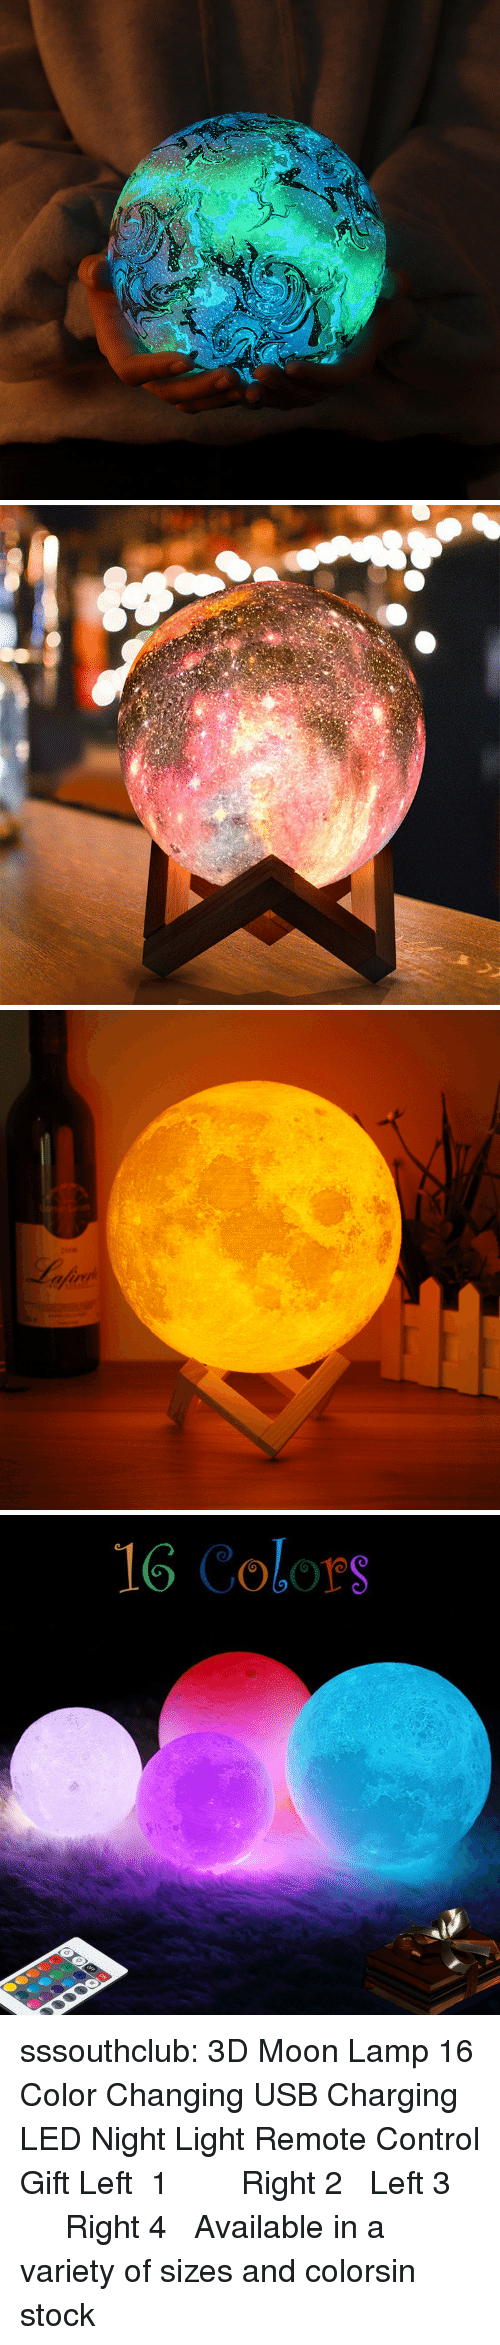 Tumblr, Control, and Blog: 2006  fuv   16 Colors sssouthclub: 3D Moon Lamp 16 Color Changing USB Charging LED Night Light Remote Control Gift  Left 1  ☆★  Right 2   Left 3  ☆★  Right 4  Available in a variety of sizes and colors,in stock